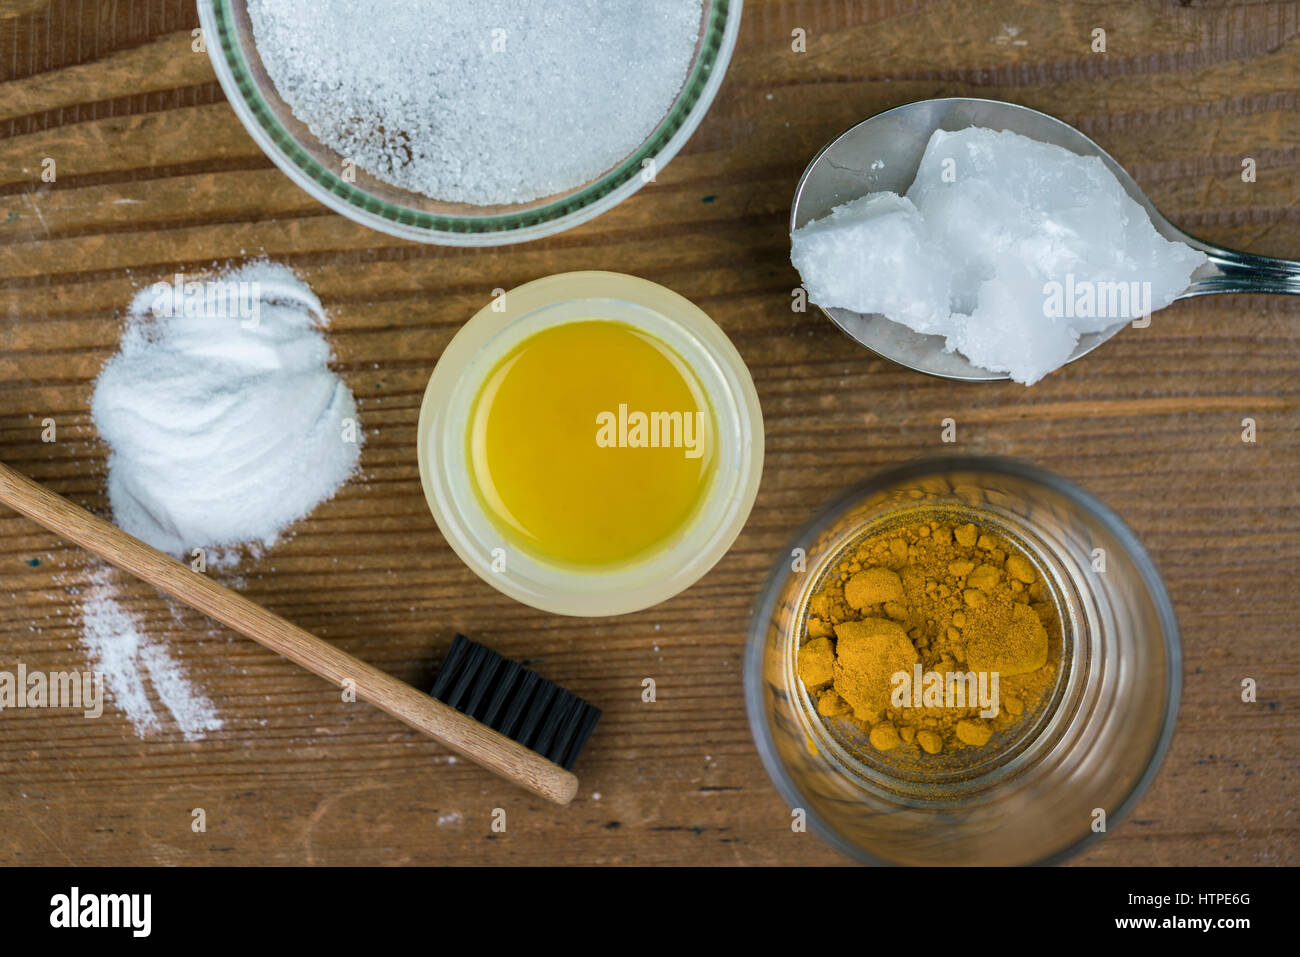 Diy Toothpaste With Ingredients Coconut Oil Turmeric Baking